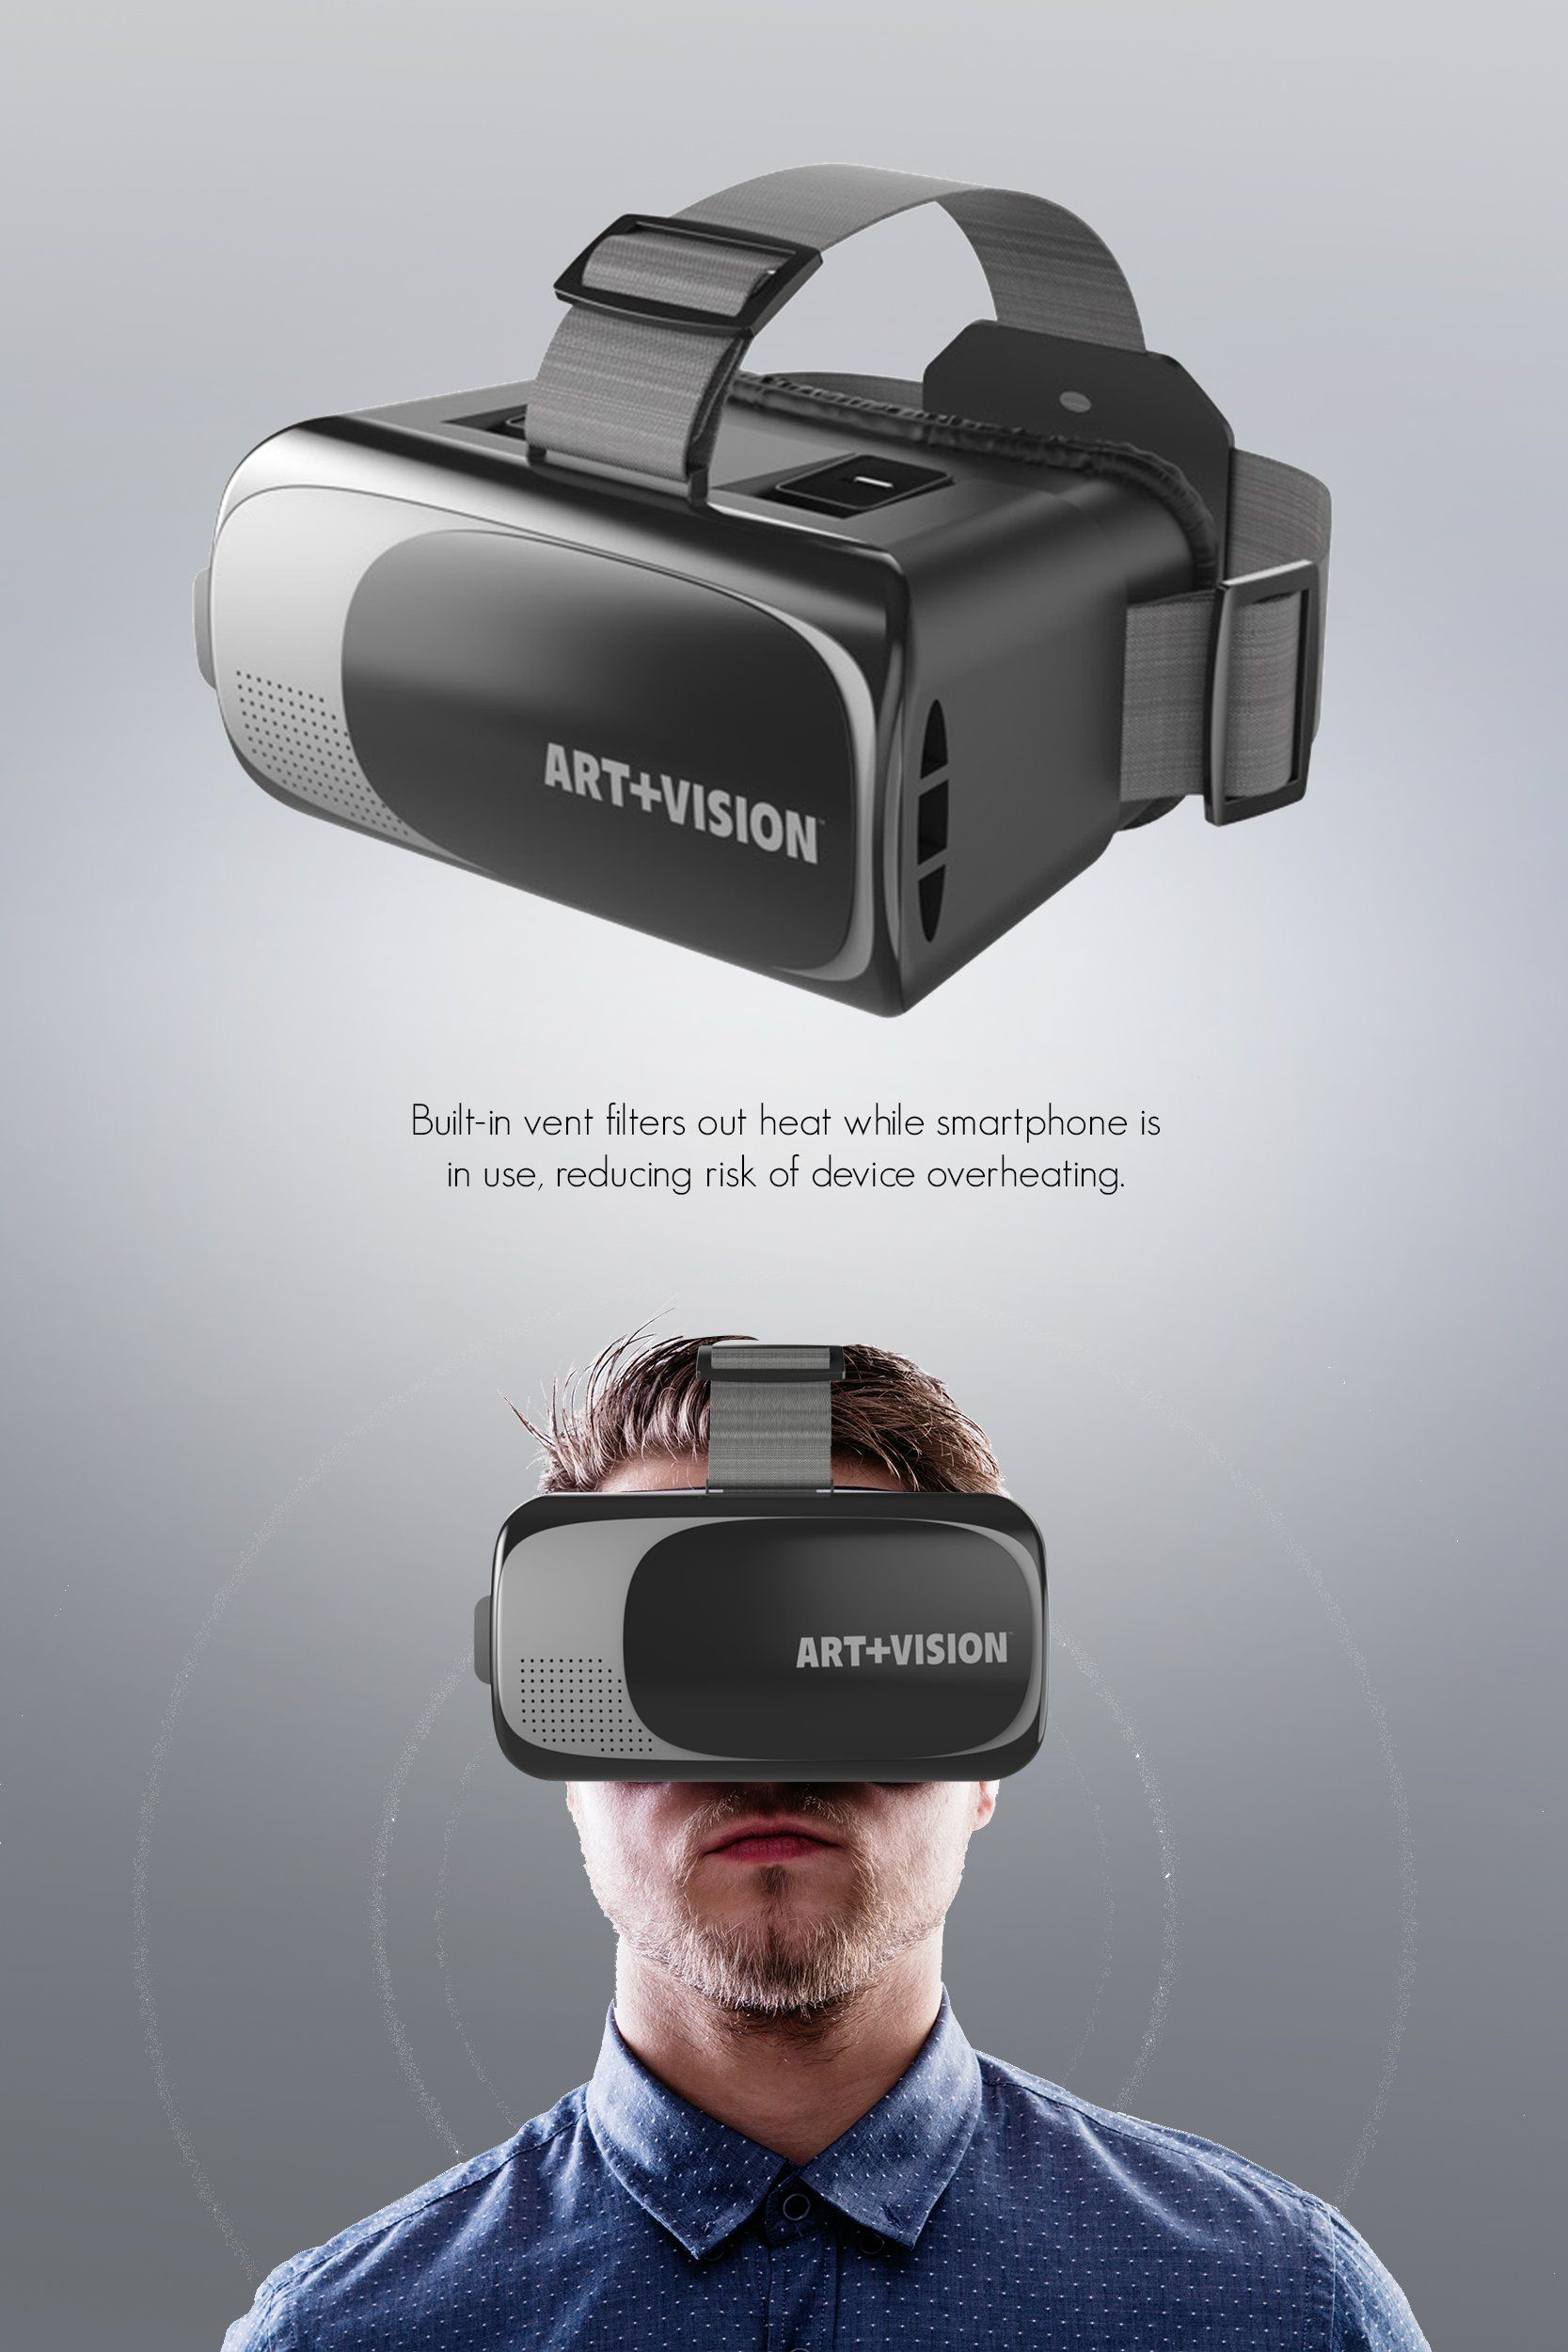 18a53f9caeeb Art Vision Virtual Reality VR Headset 3D Glasses Works With All Smartphones  4.76 Android  VirtualRealityHeadsetandGameIdeas